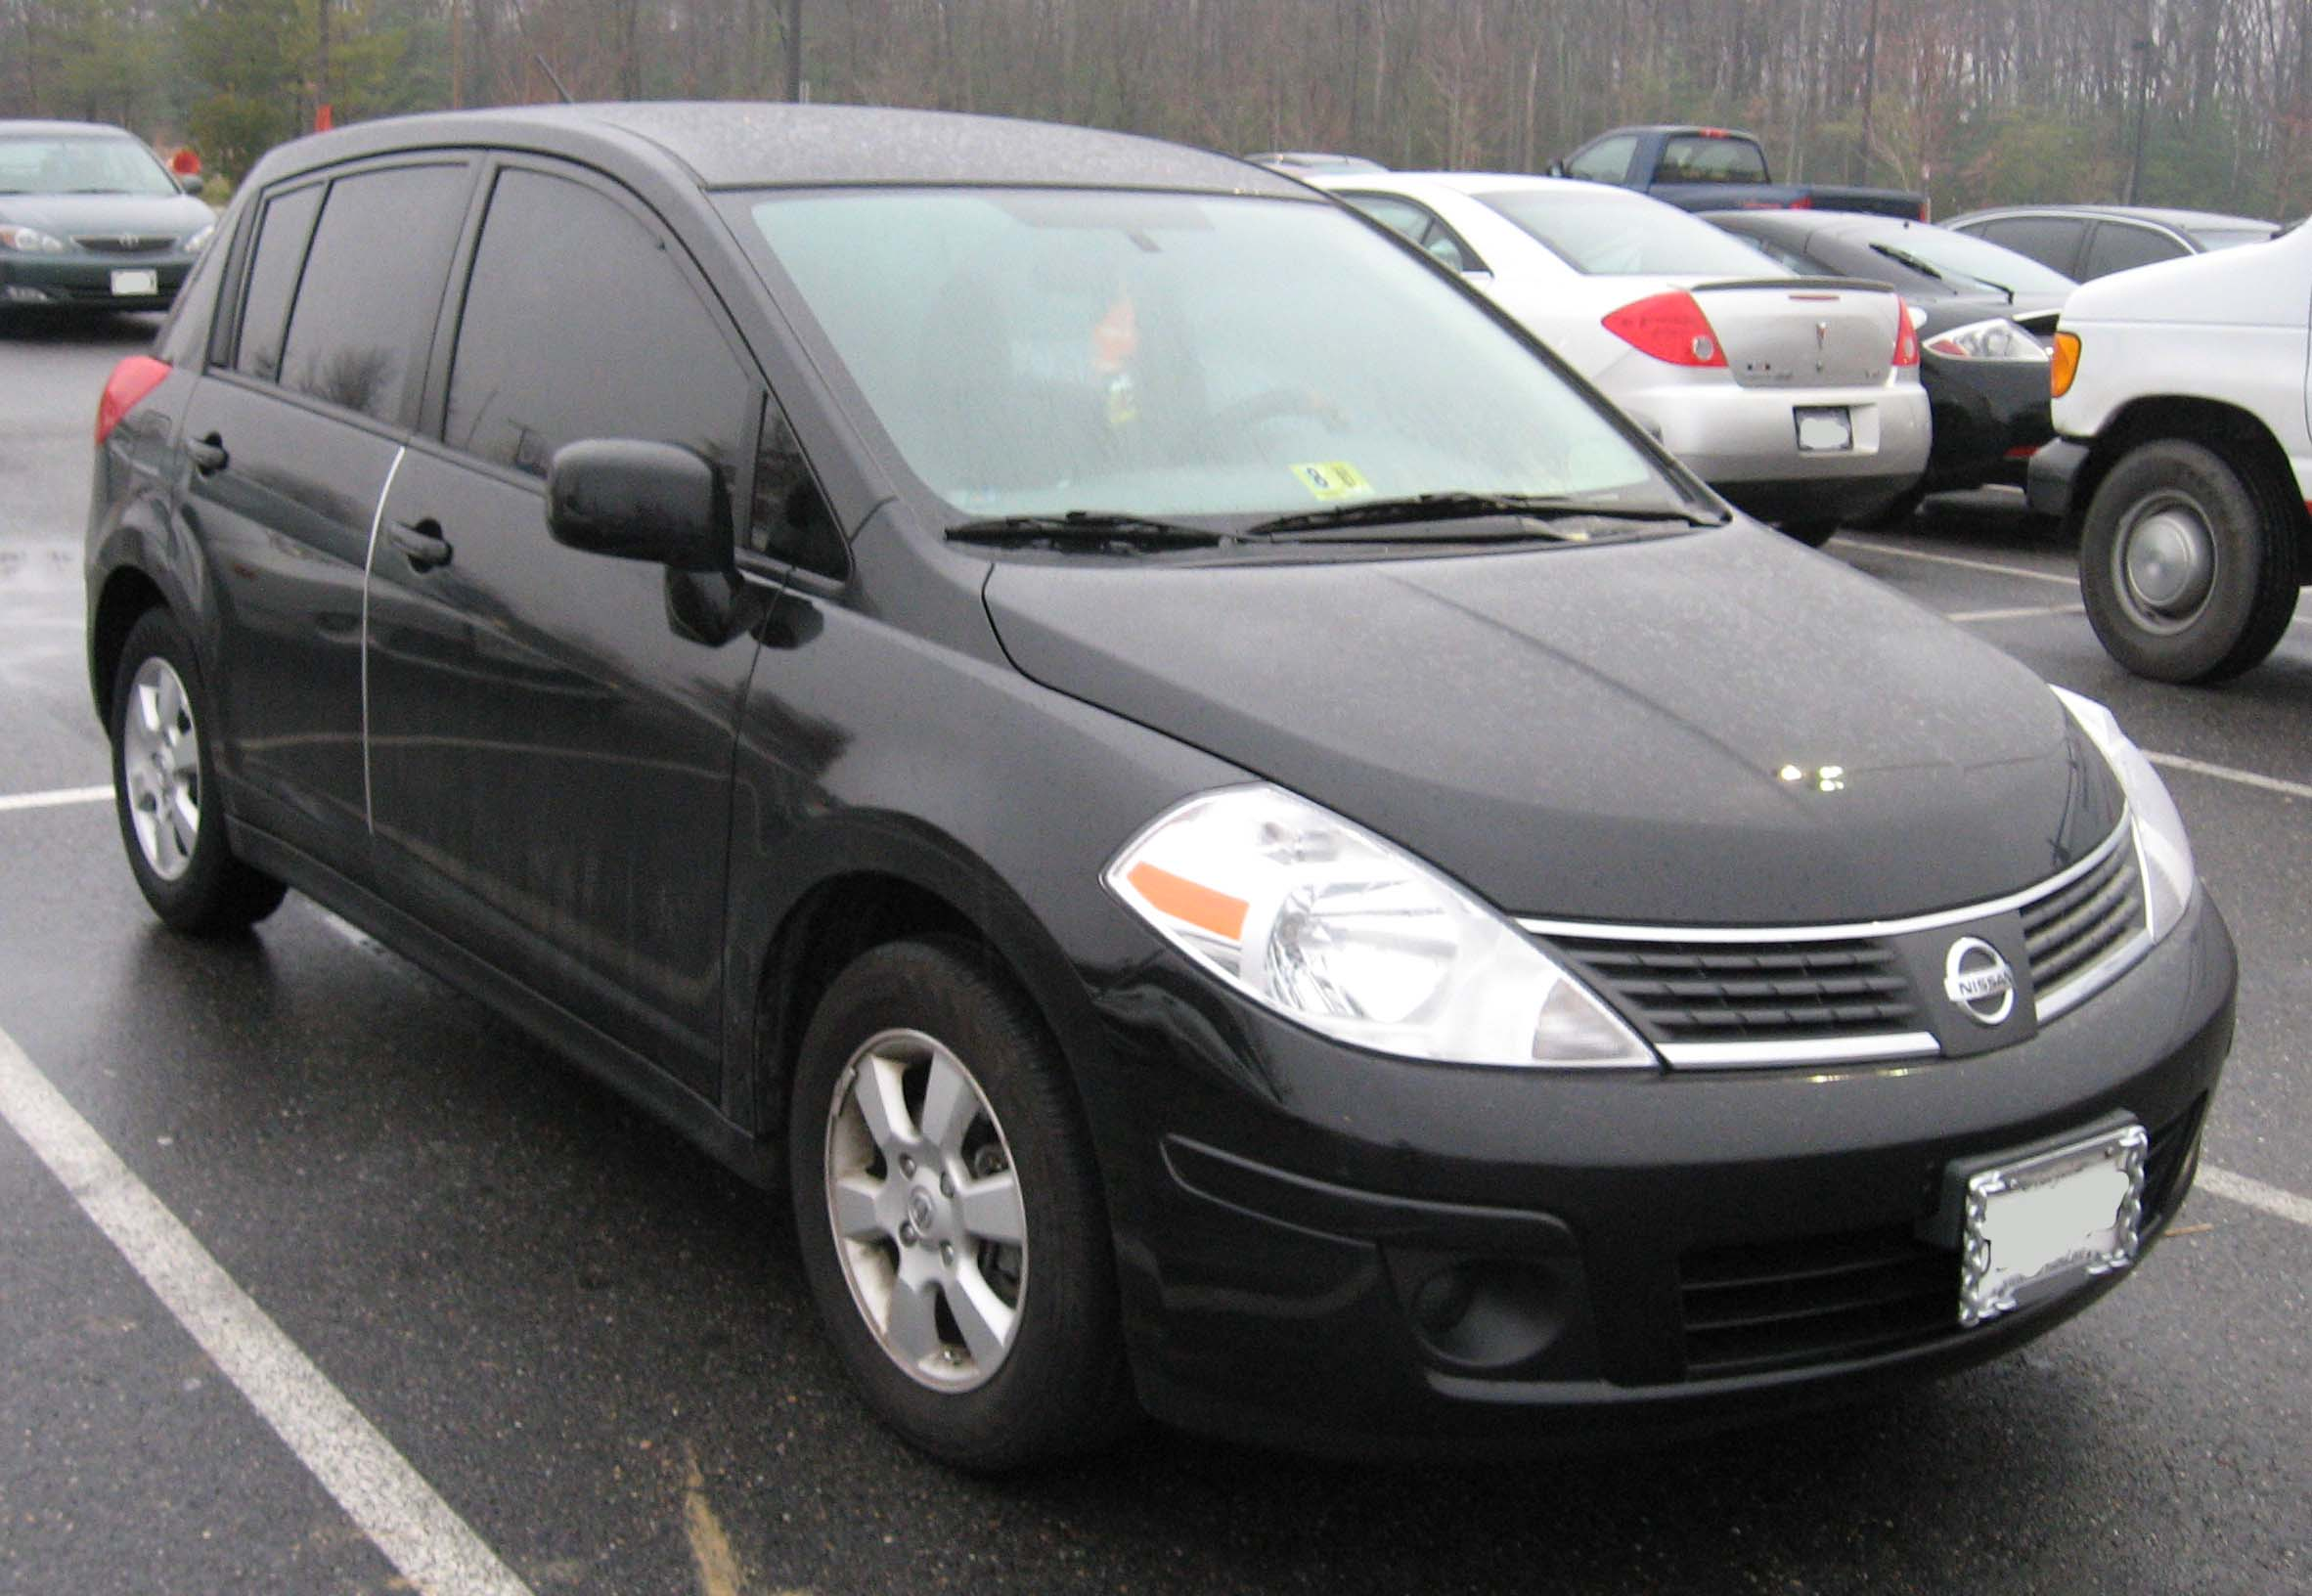 nissan versa images #2